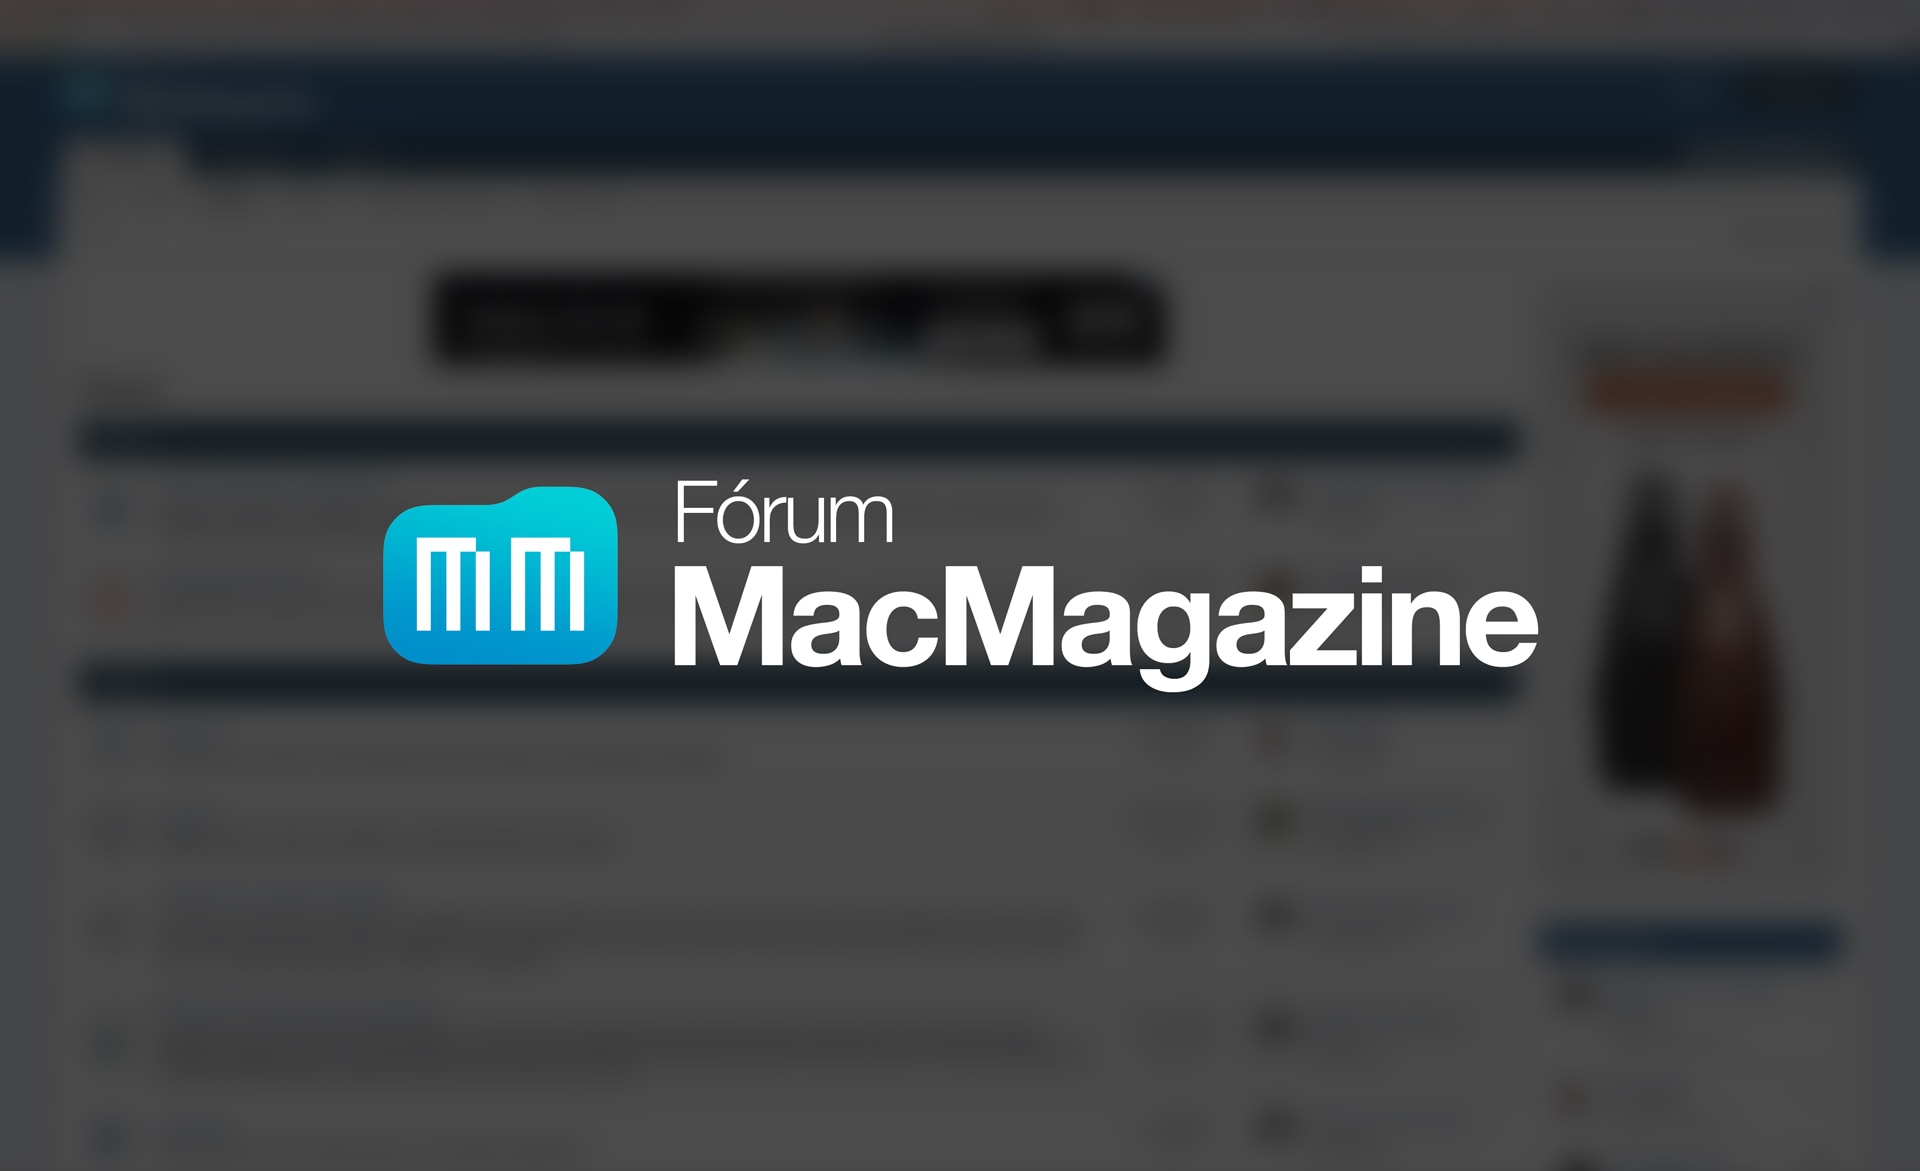 Fórum MacMagazine